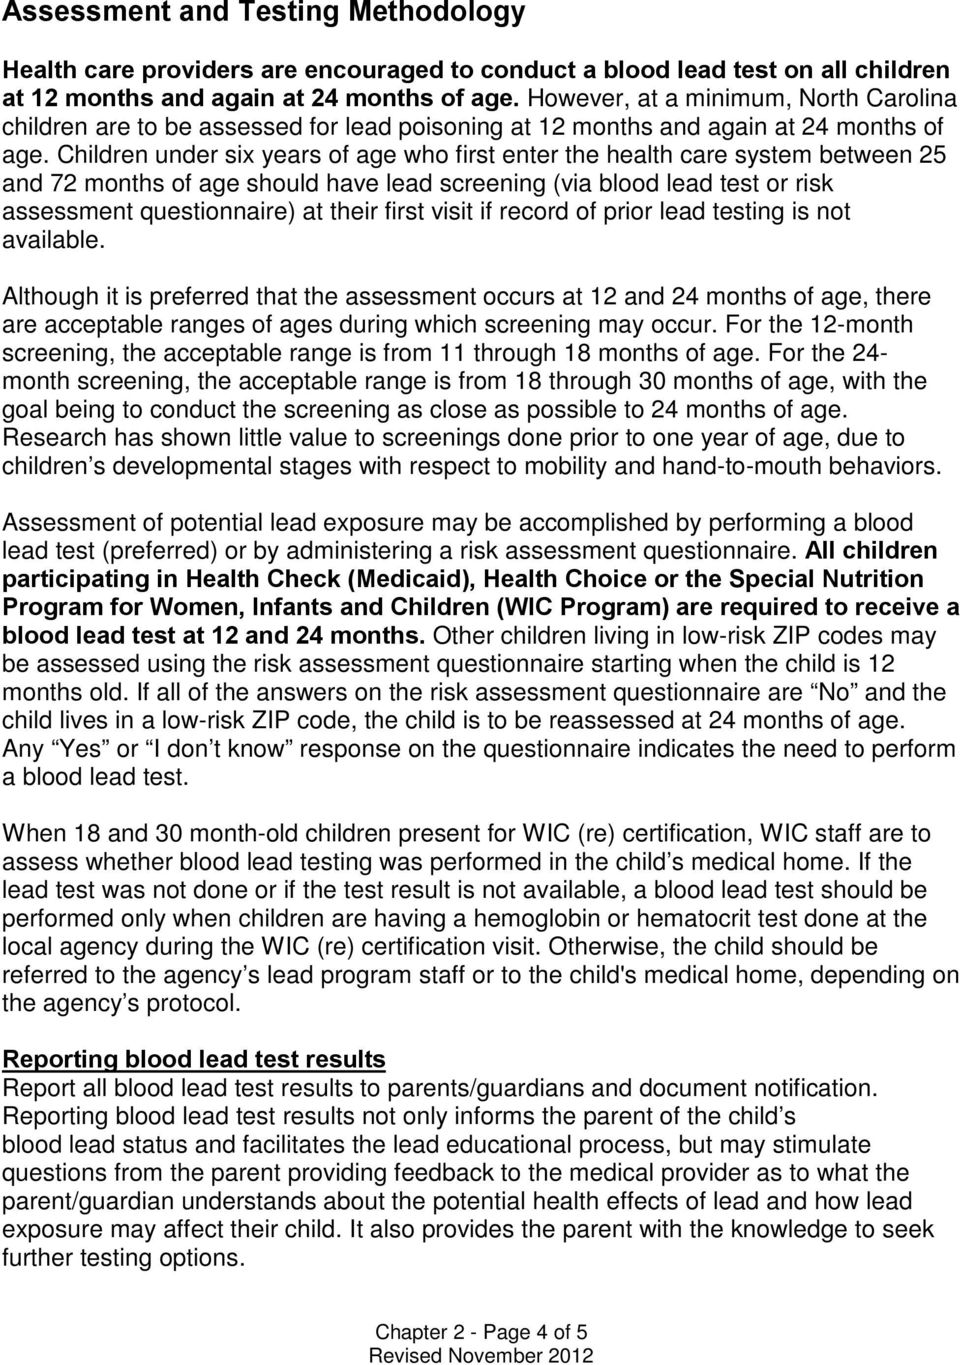 Children under six years of age who first enter the health care system between 25 and 72 months of age should have lead screening (via blood lead test or risk assessment questionnaire) at their first